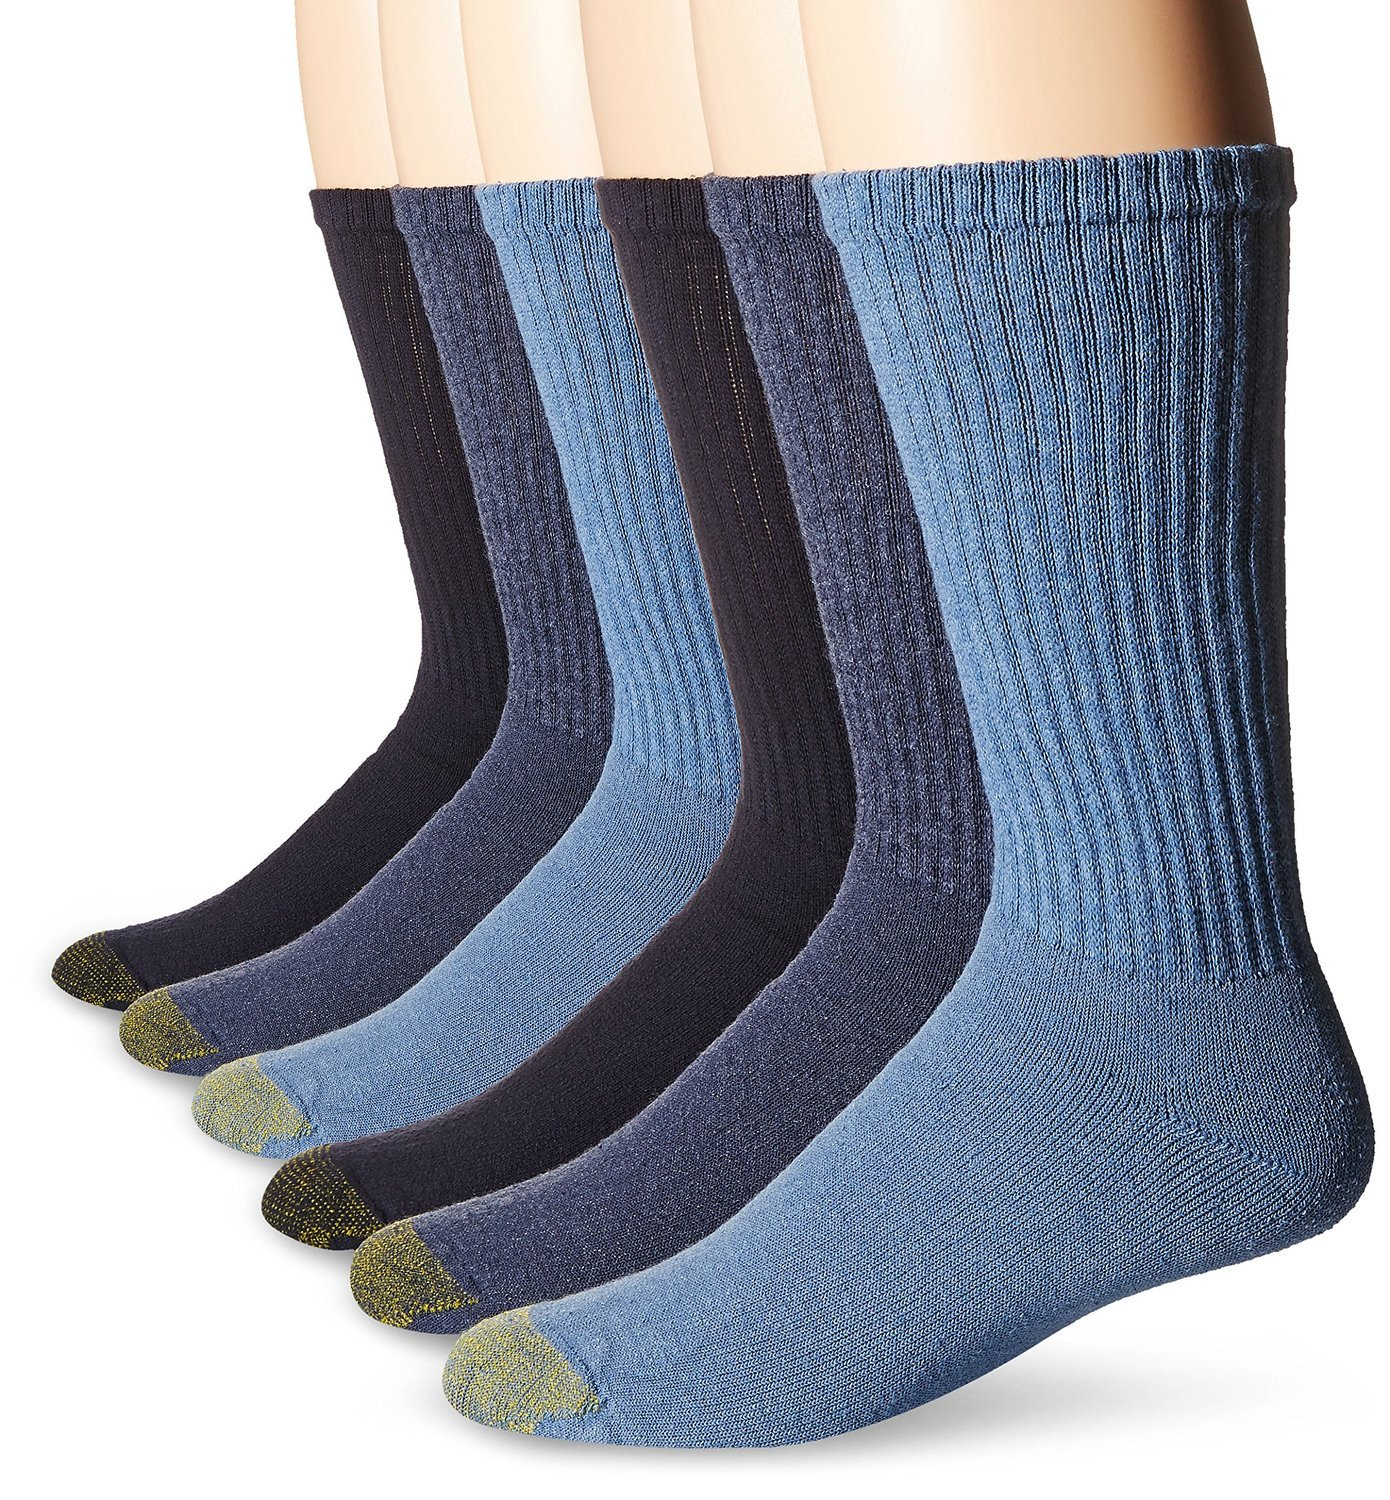 Gold Toe Men's 12-Pack Cotton Crew Athletic Sock, Assorted Blues, 10-13 (Shoe Size 6-12.5) by Gold Toe